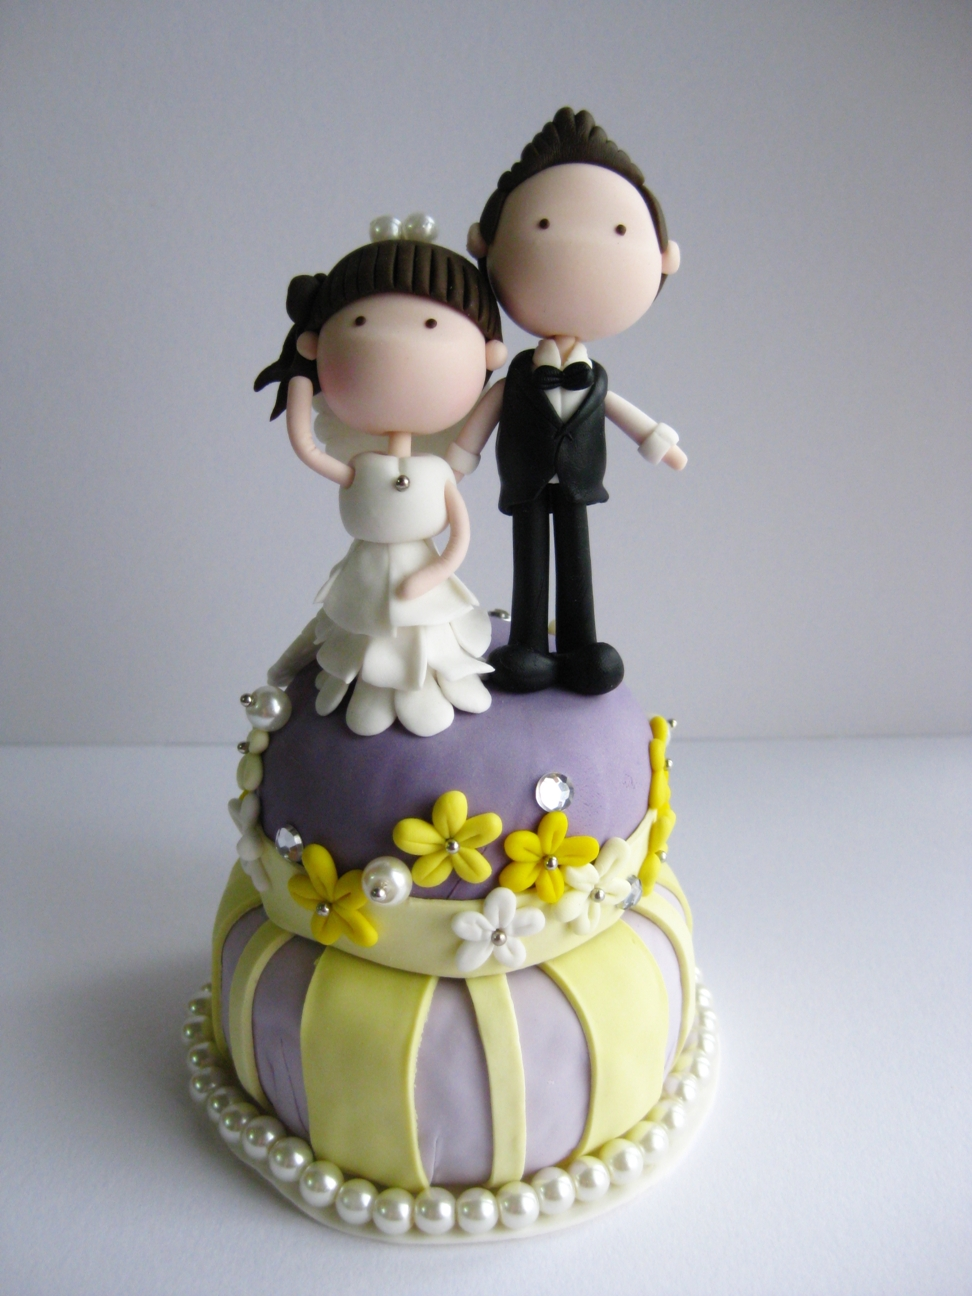 wedding clay cake topper standing on top of a cake not edible